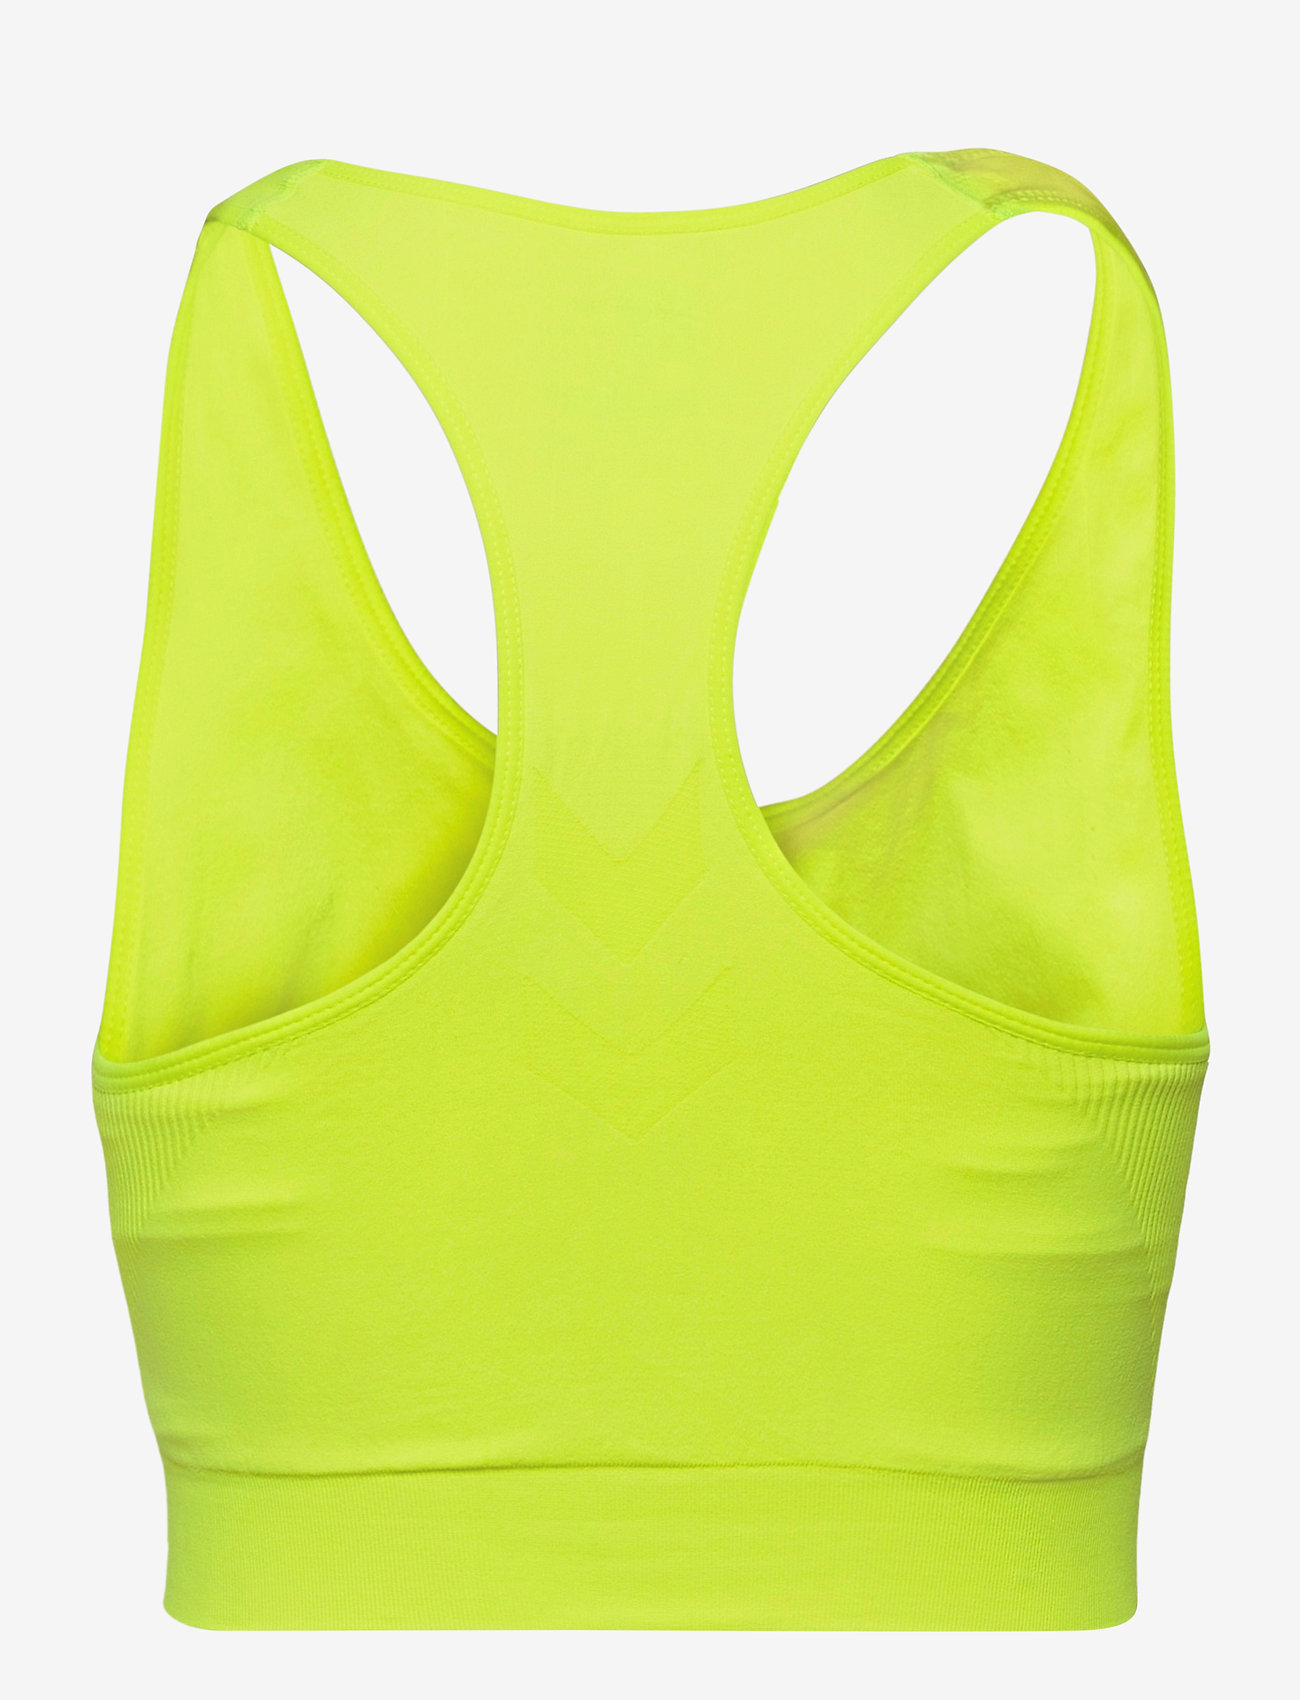 Hummel - SUE SEAMLESS SPORTS TOP - sportbeh''s: low - safety yellow - 1